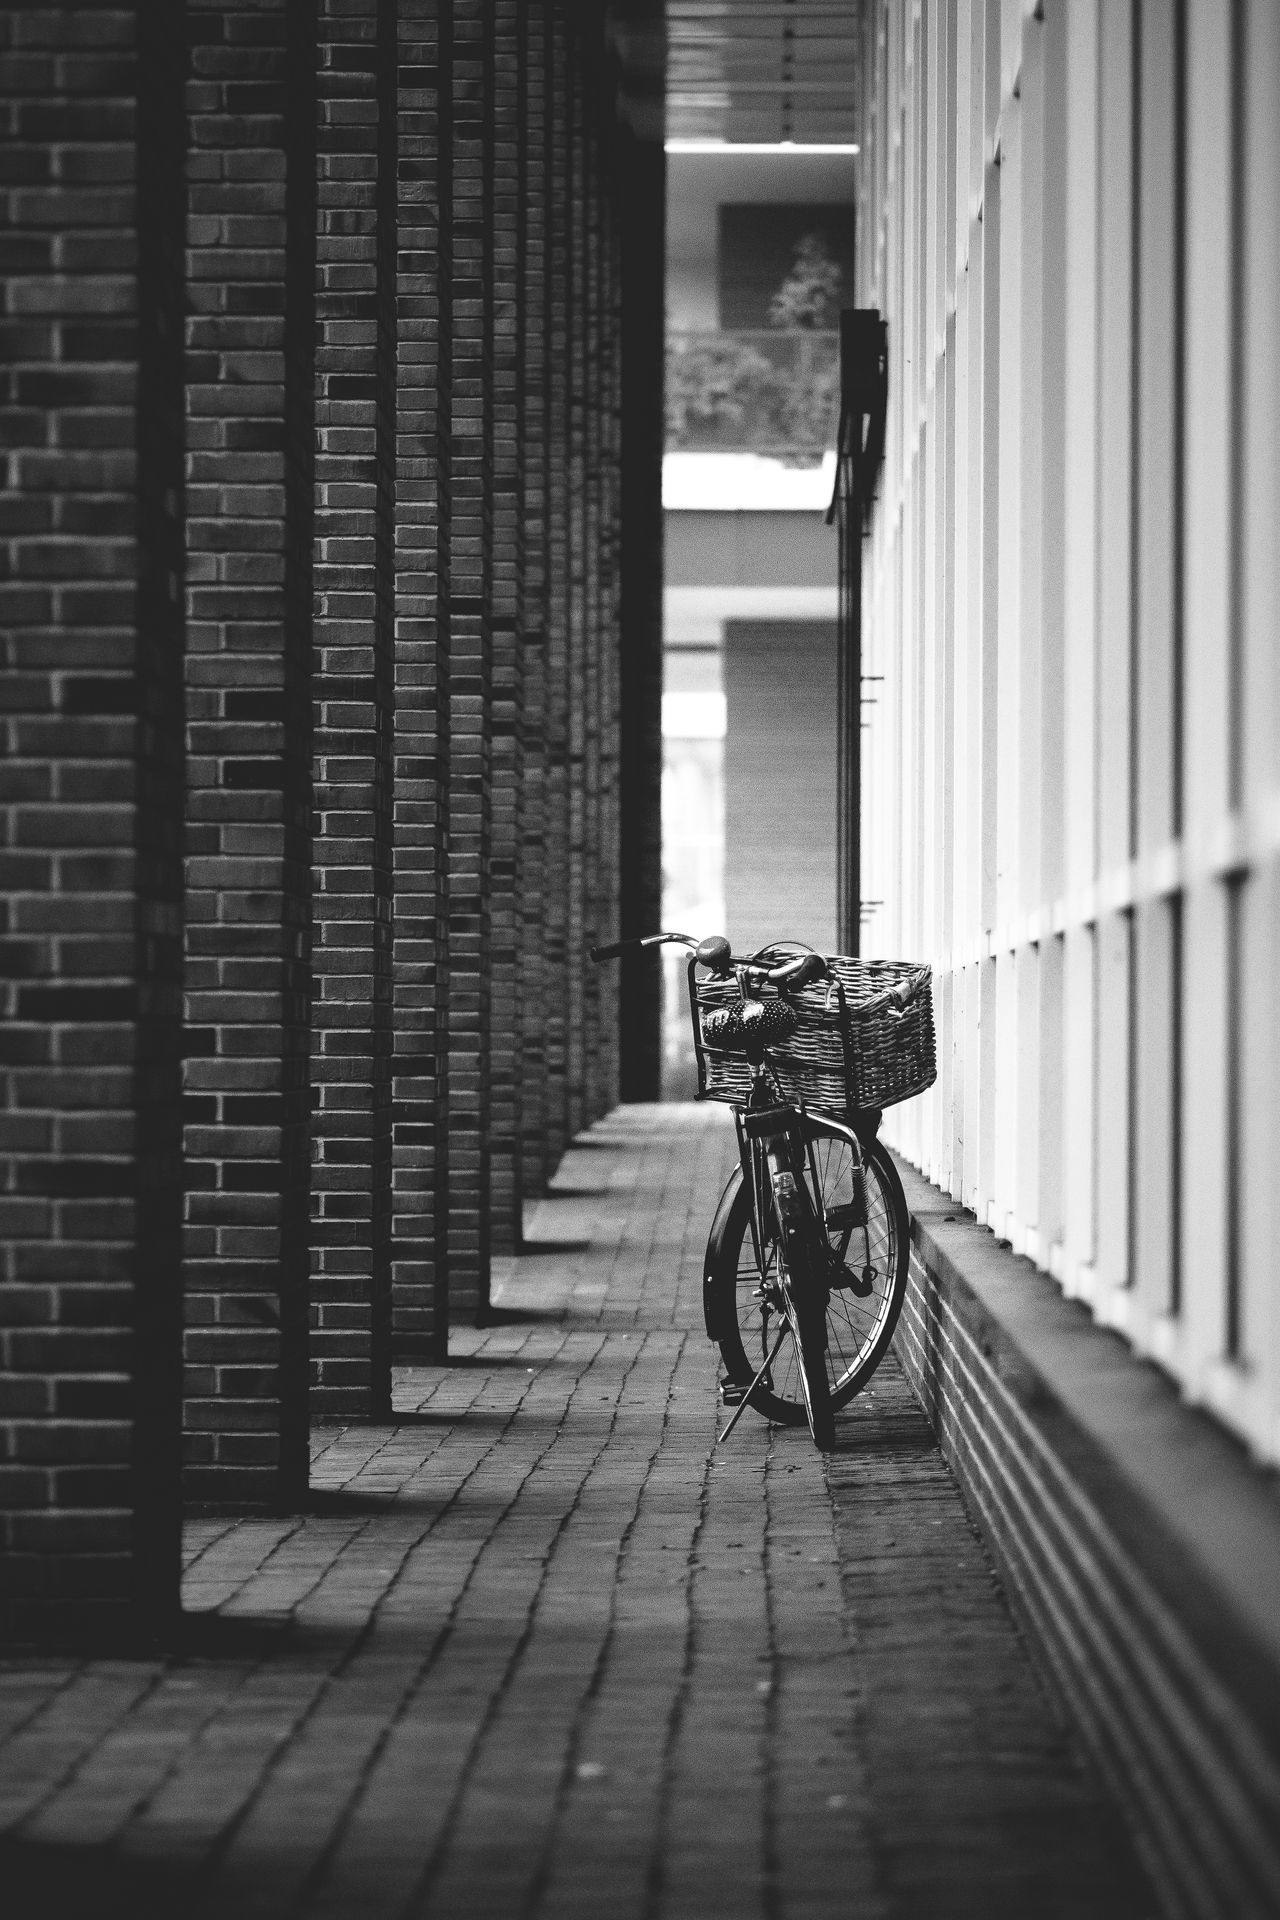 simple bike Architecture Bicycle Blackandwhite Built Structure Day Land Vehicle Mode Of Transport Monochrome No People Outdoors Stationary Transportation